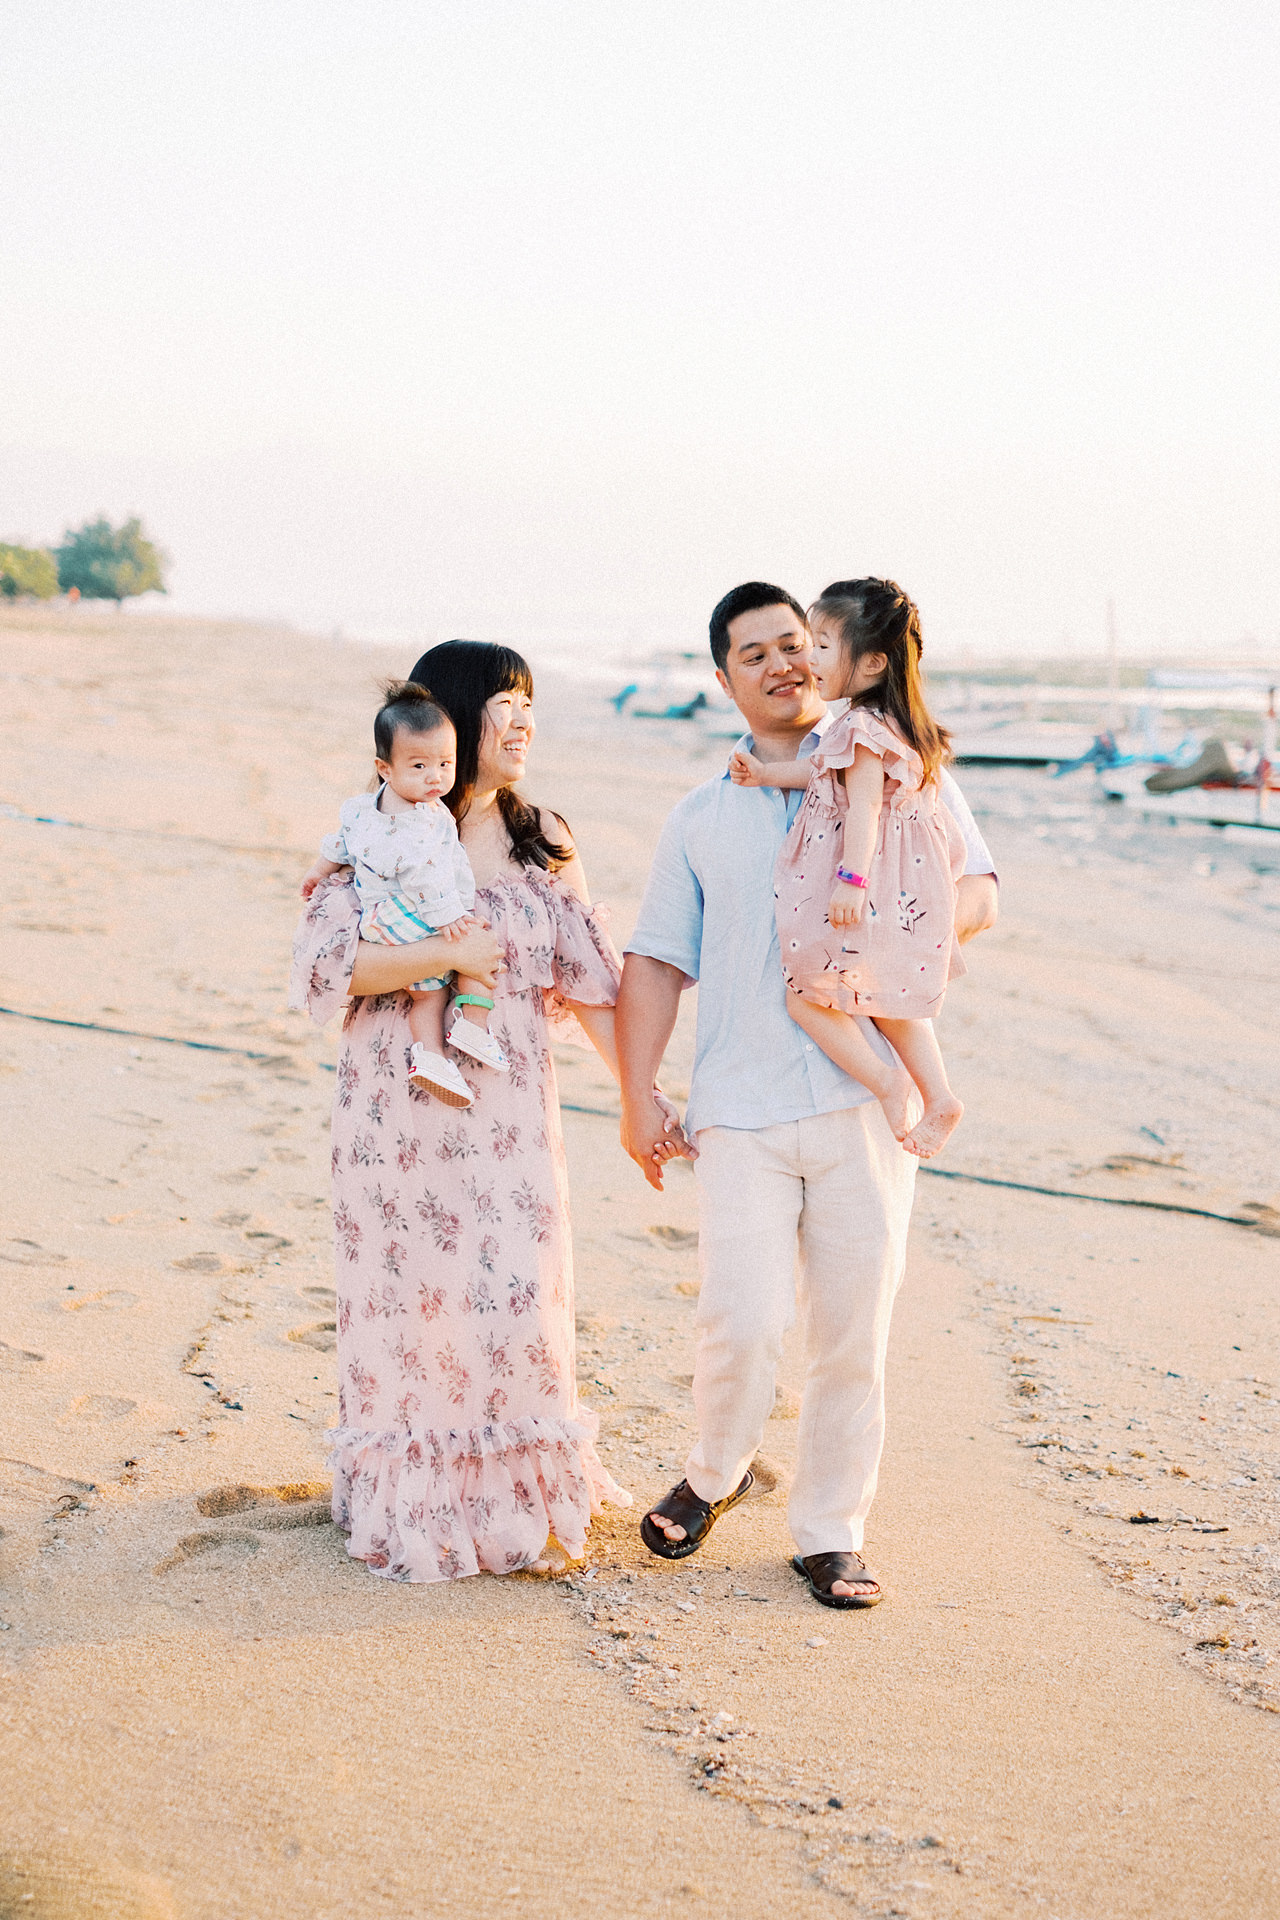 Kids and Family Session in Bali 3